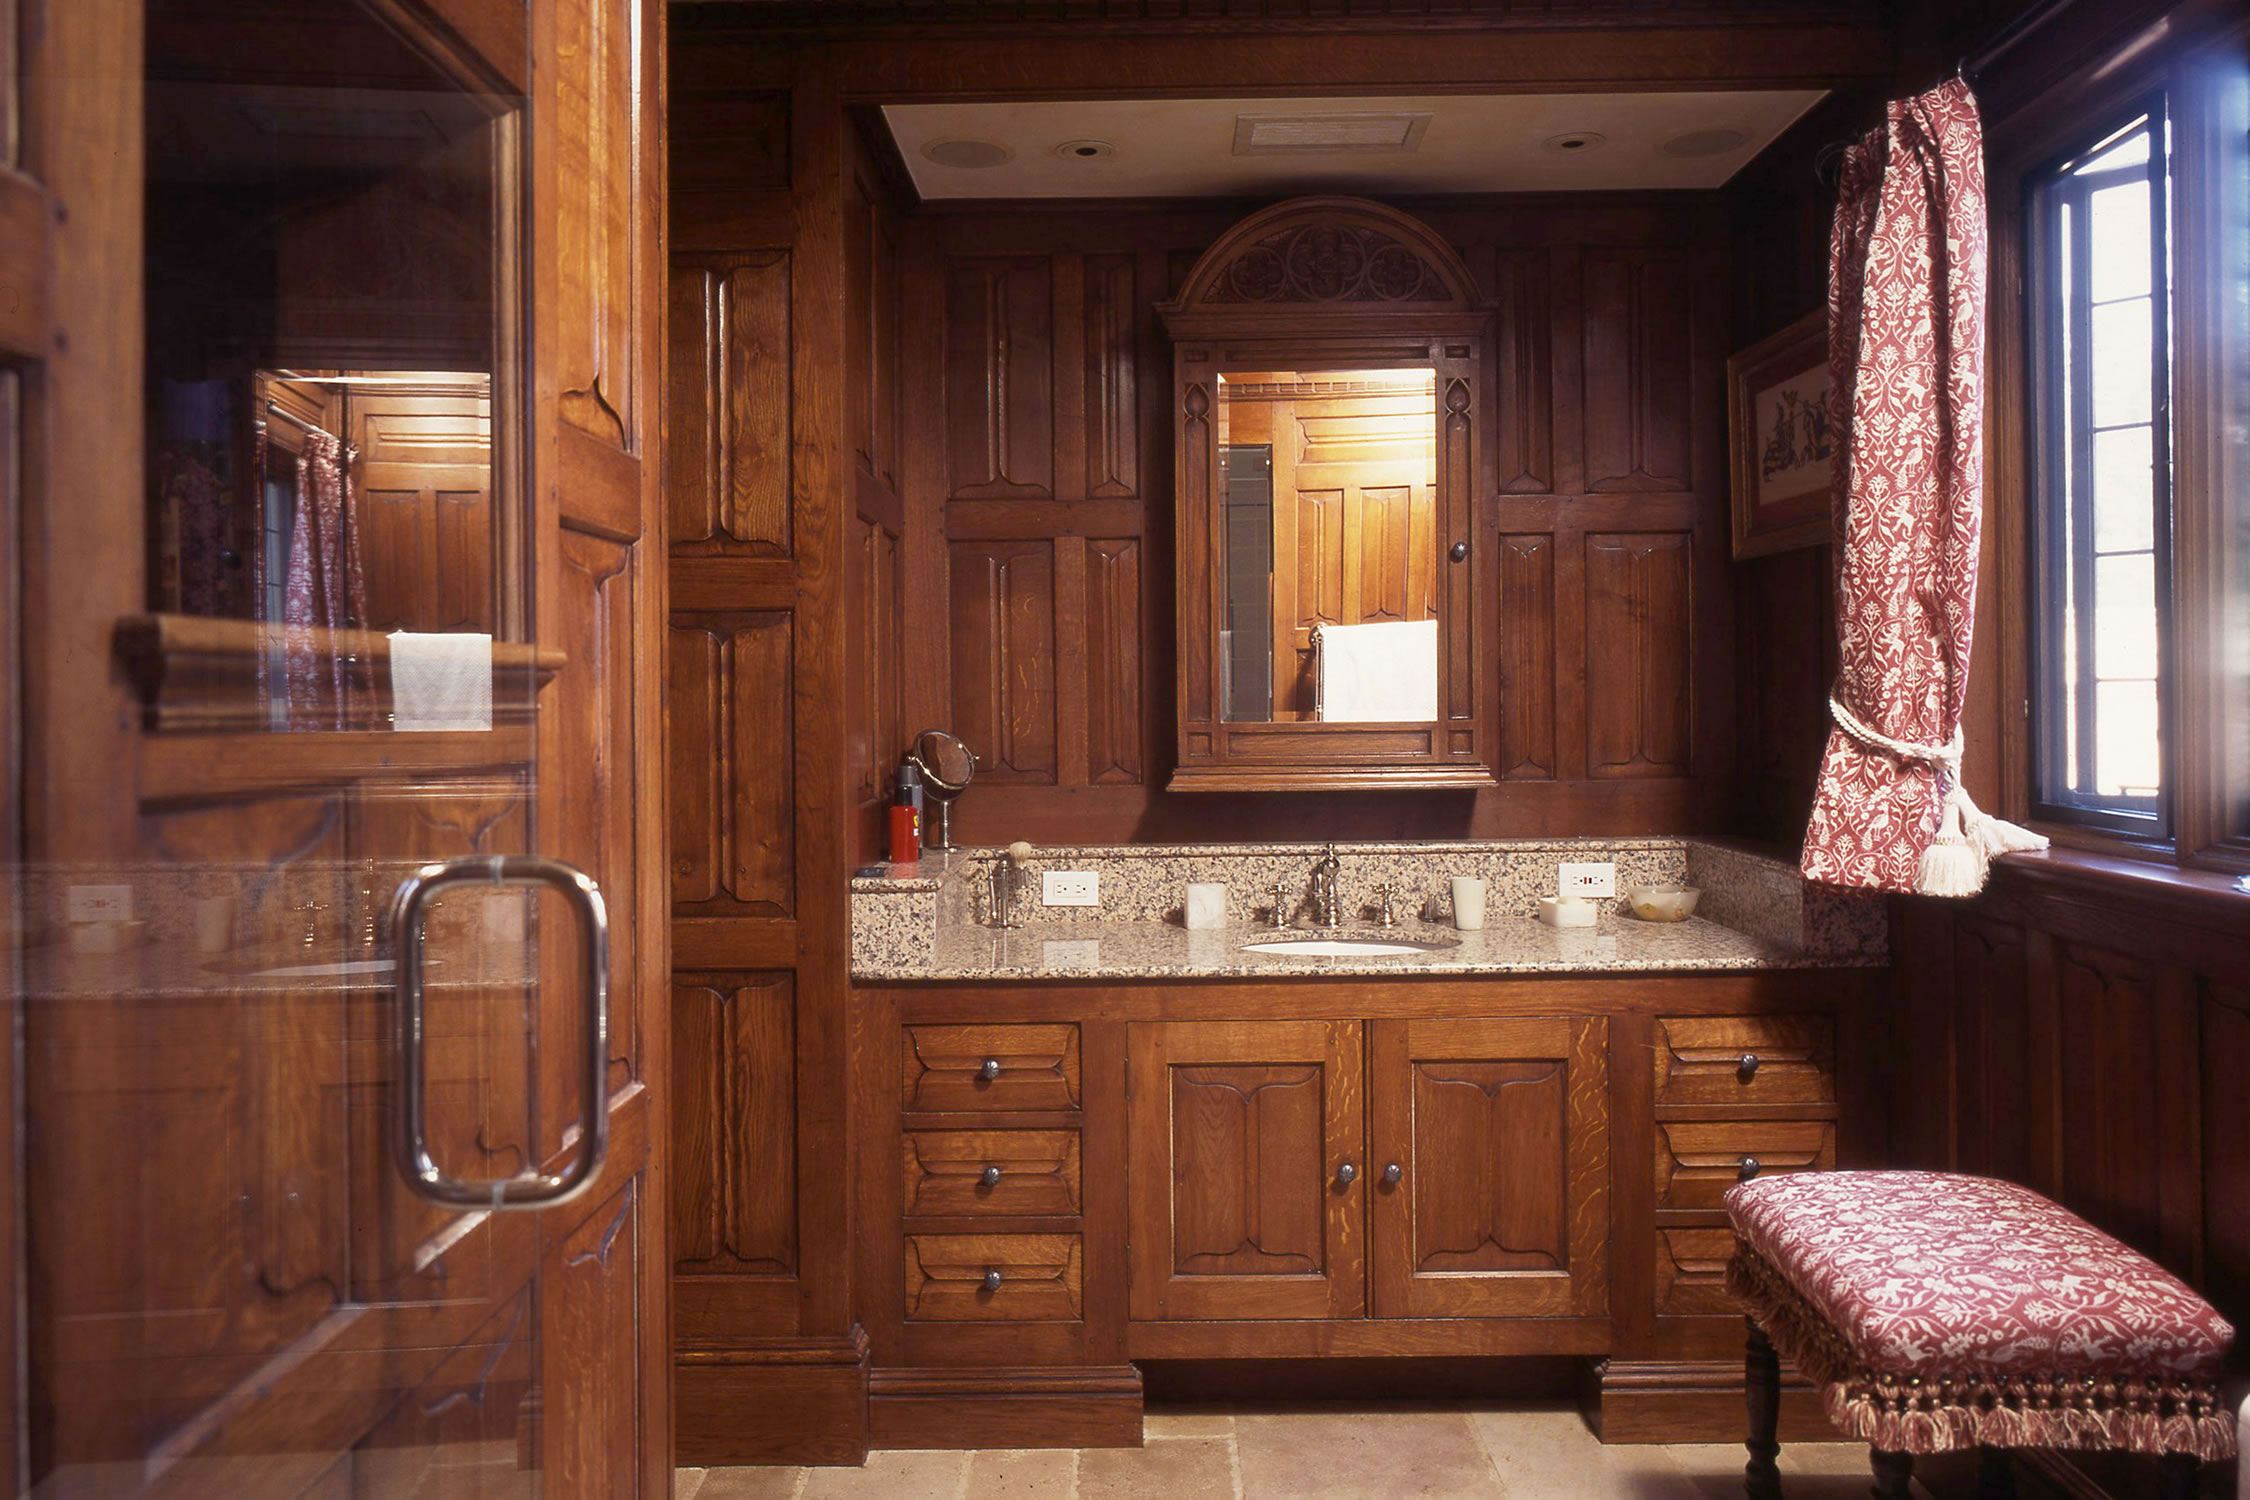 Oak panelled bathroom, hand-carved parchemin design